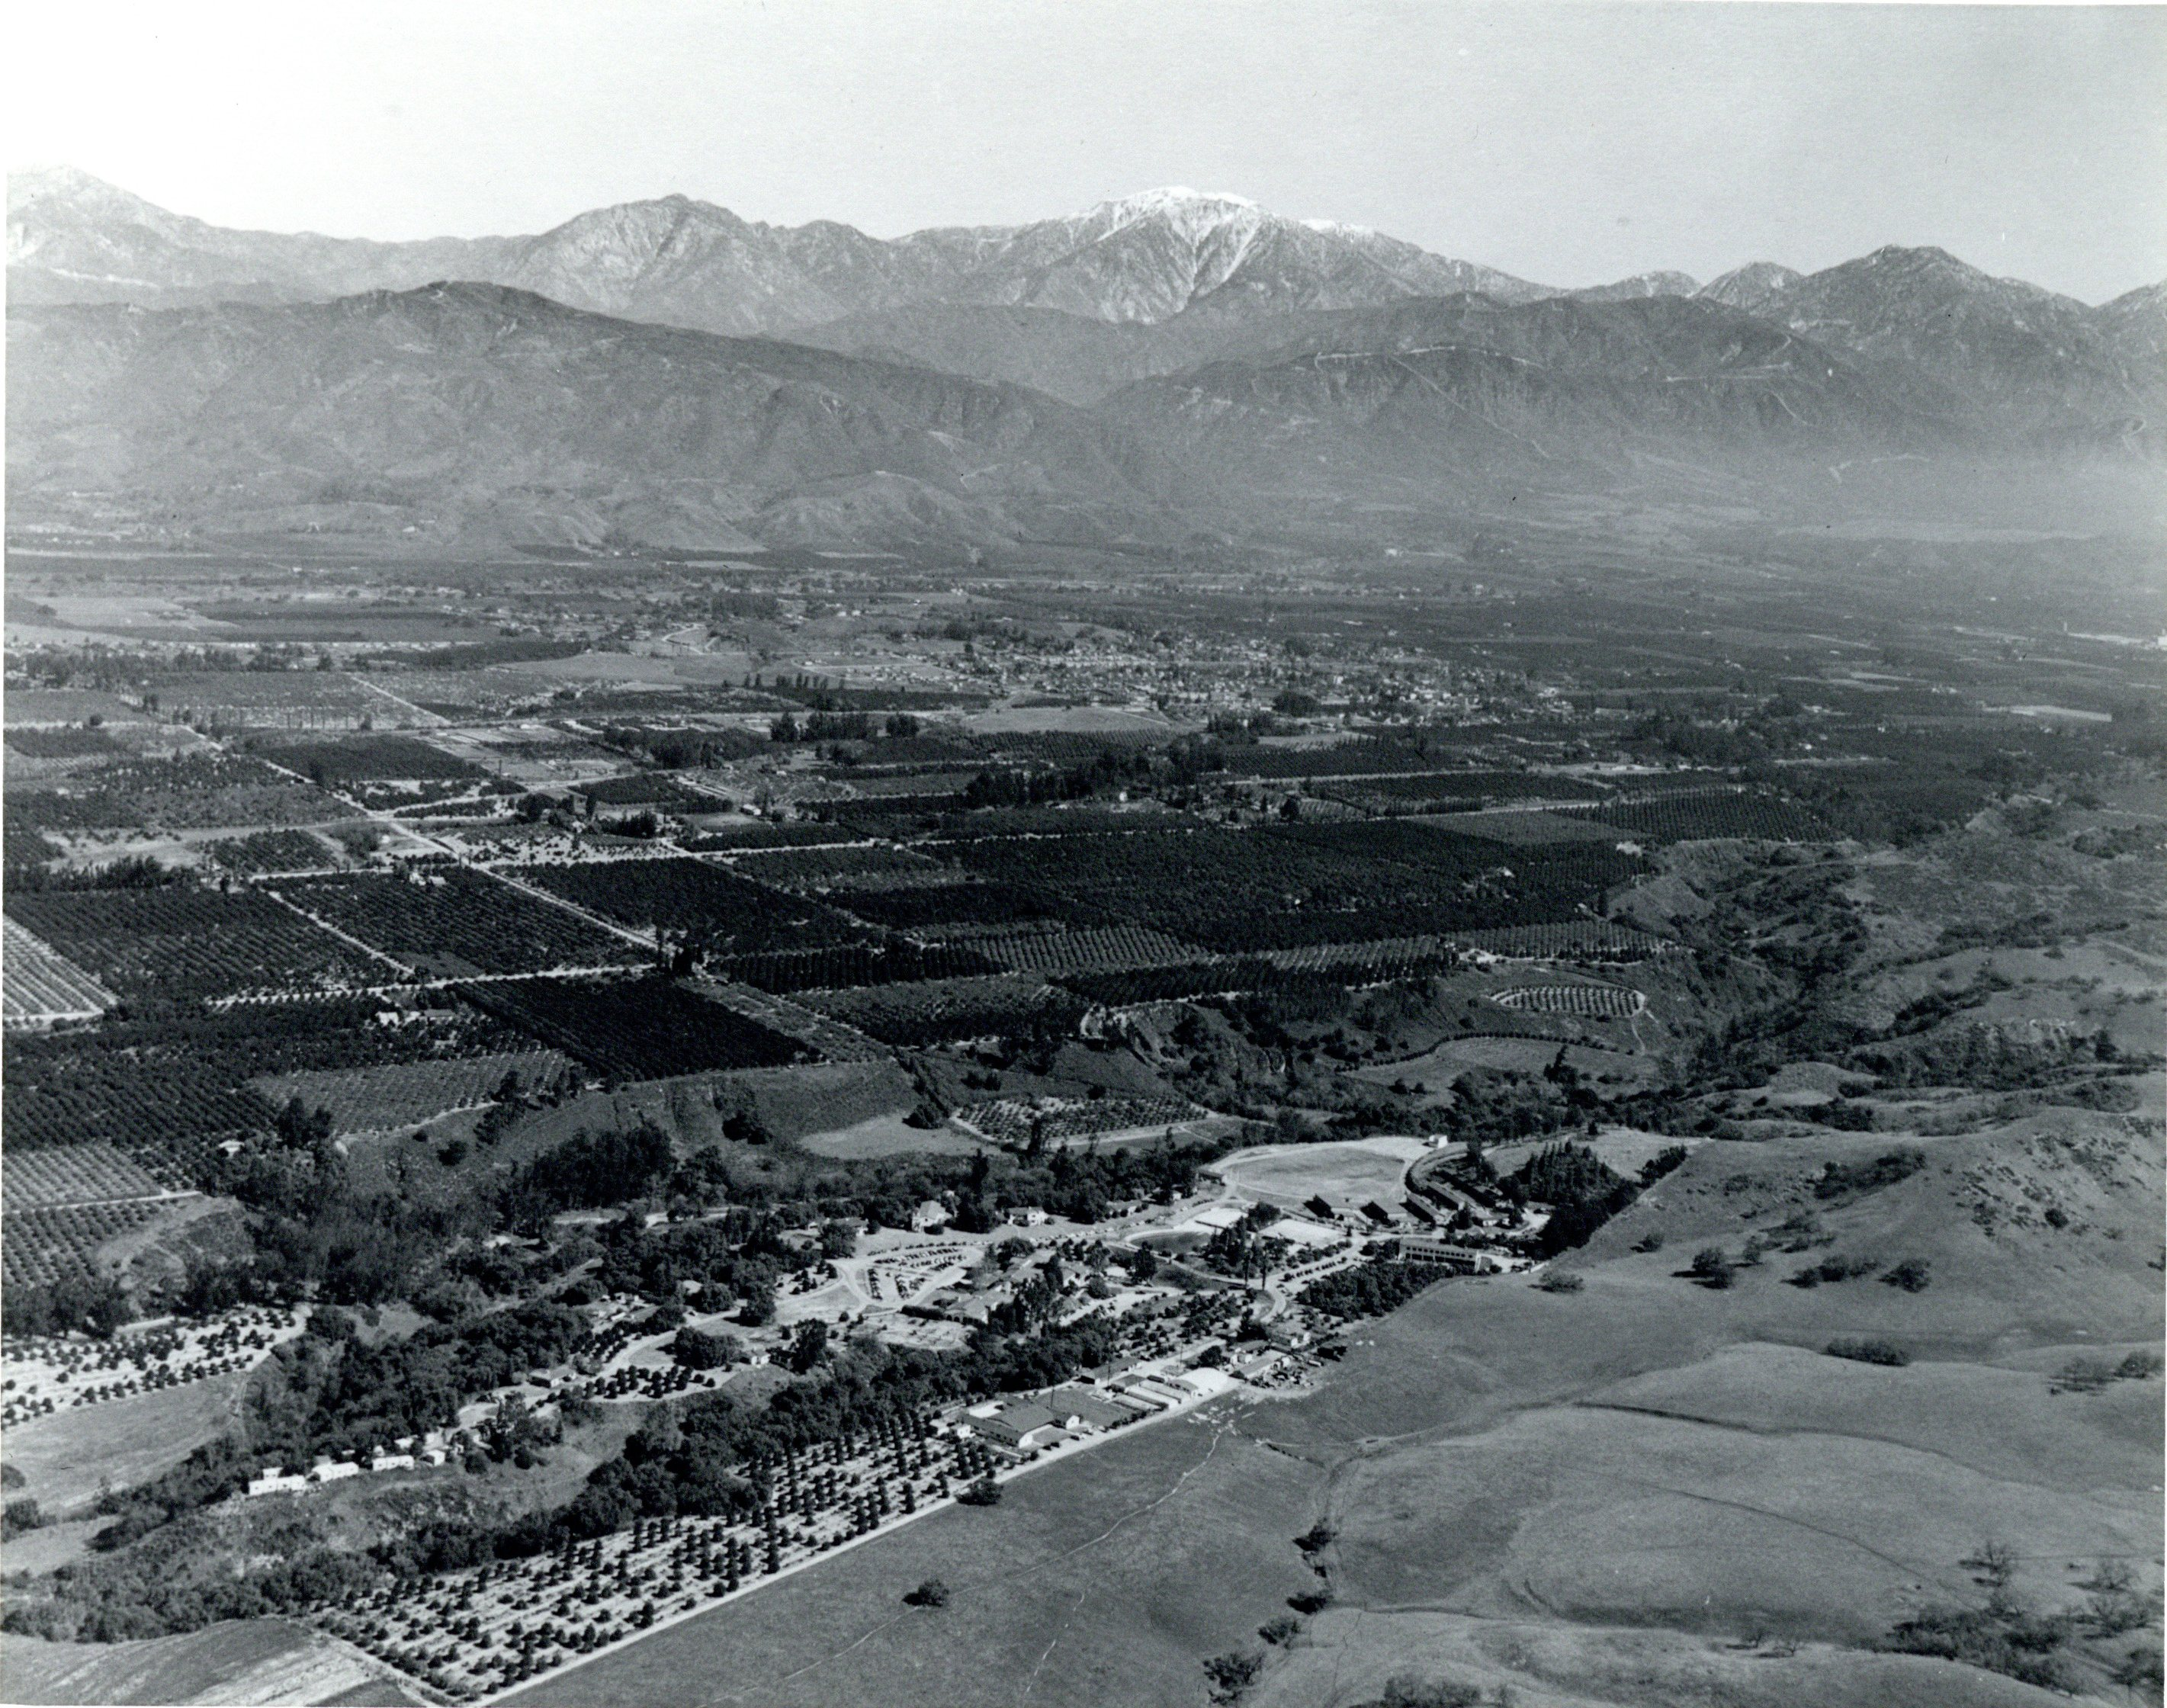 Ariel view of a portion of the Pomona Valley looking North to North East